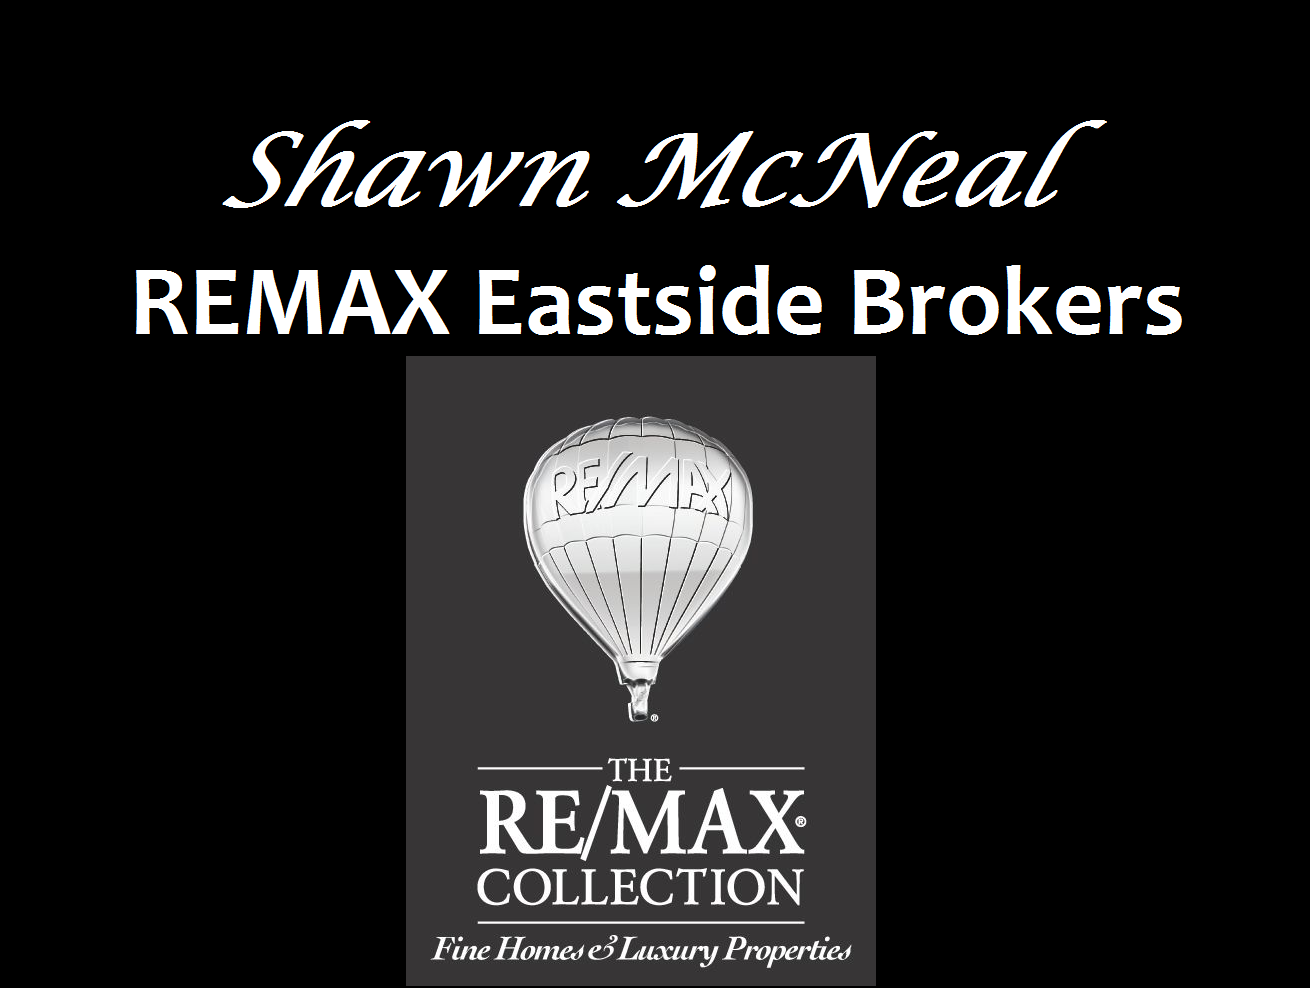 Shawn McNeal REMAX Eastside Brokers